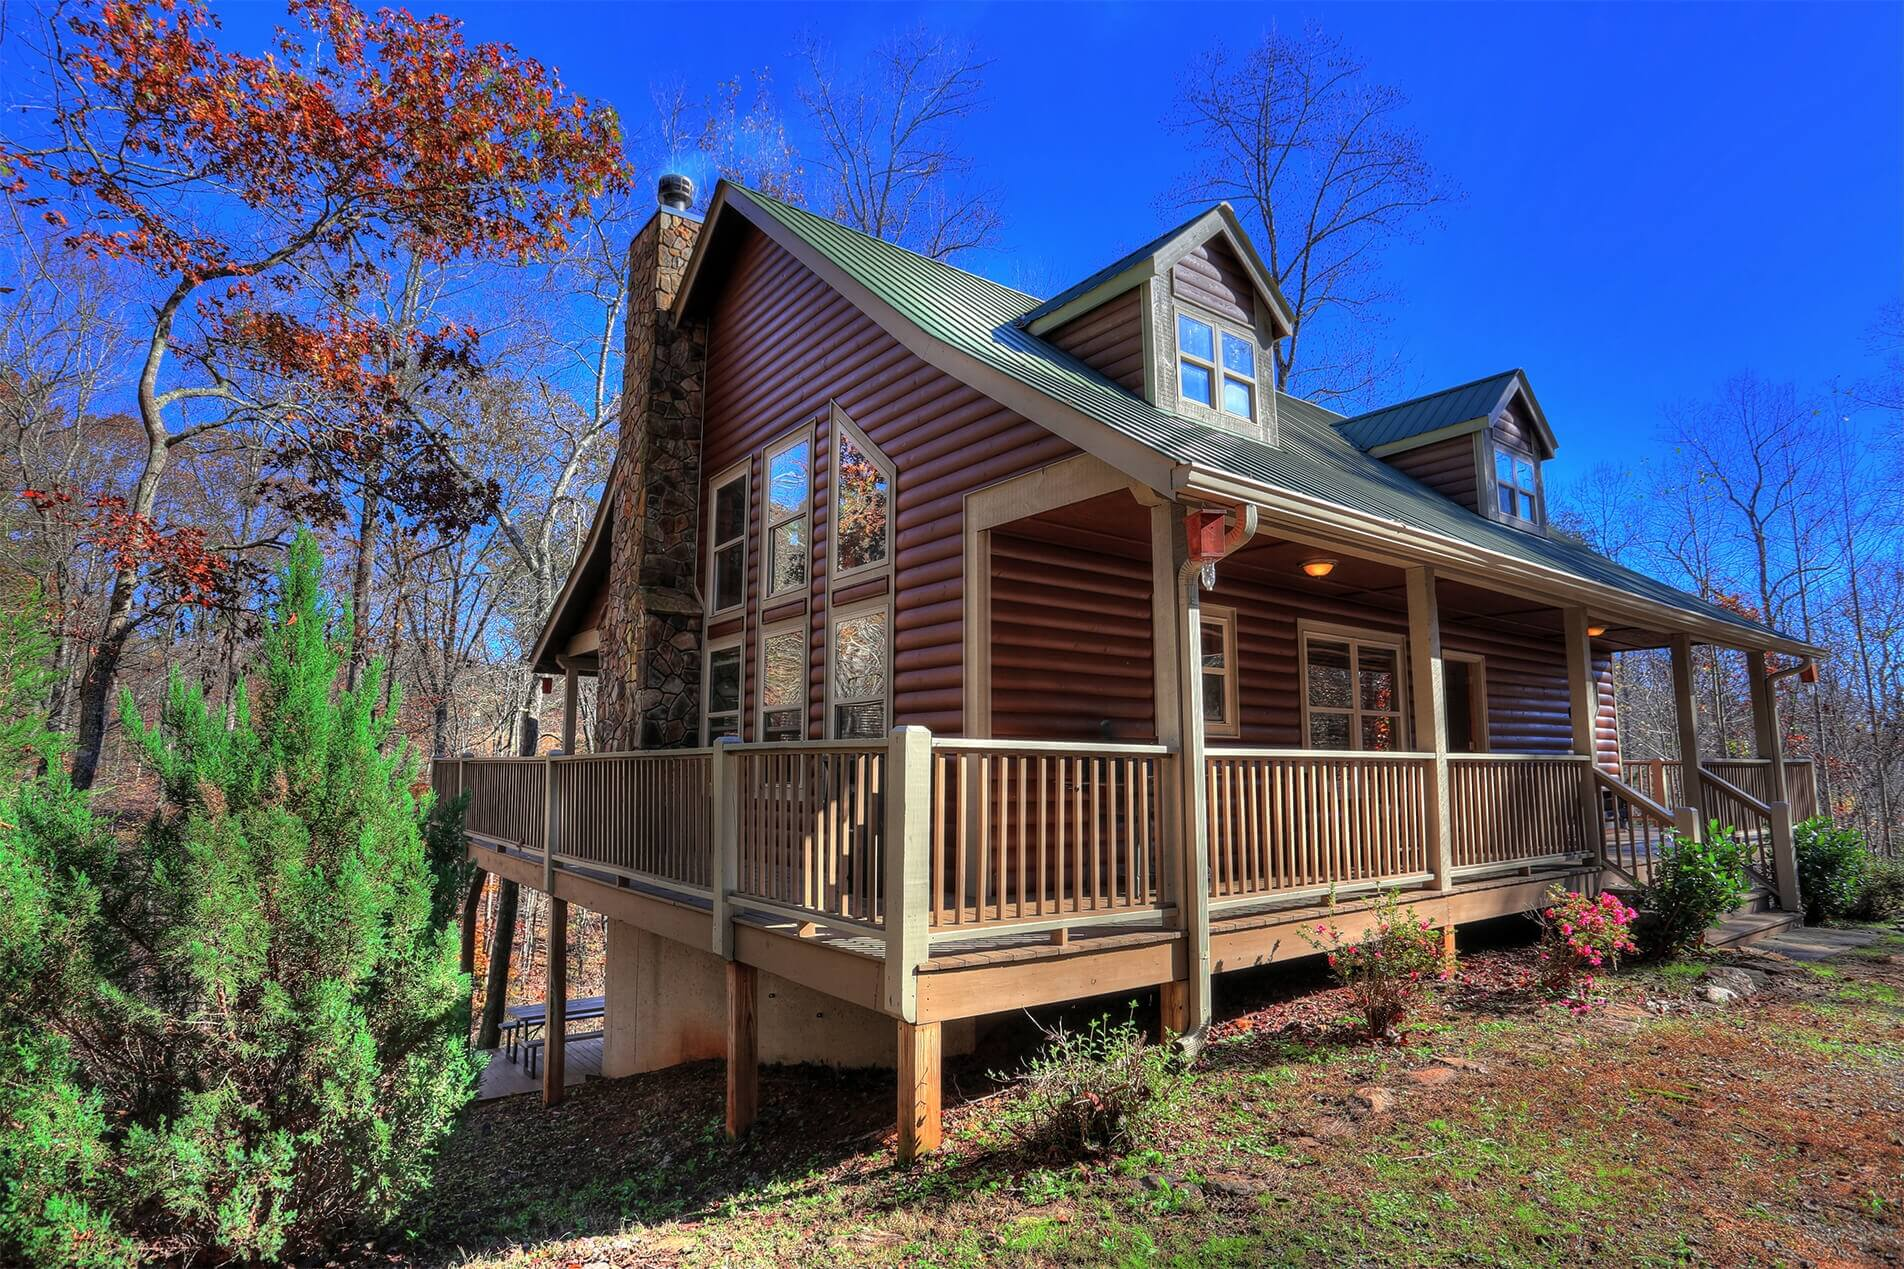 Holiday-Cedar-Creek-Cabin-Rentals-Helen-Georgia-top-banner-tiny